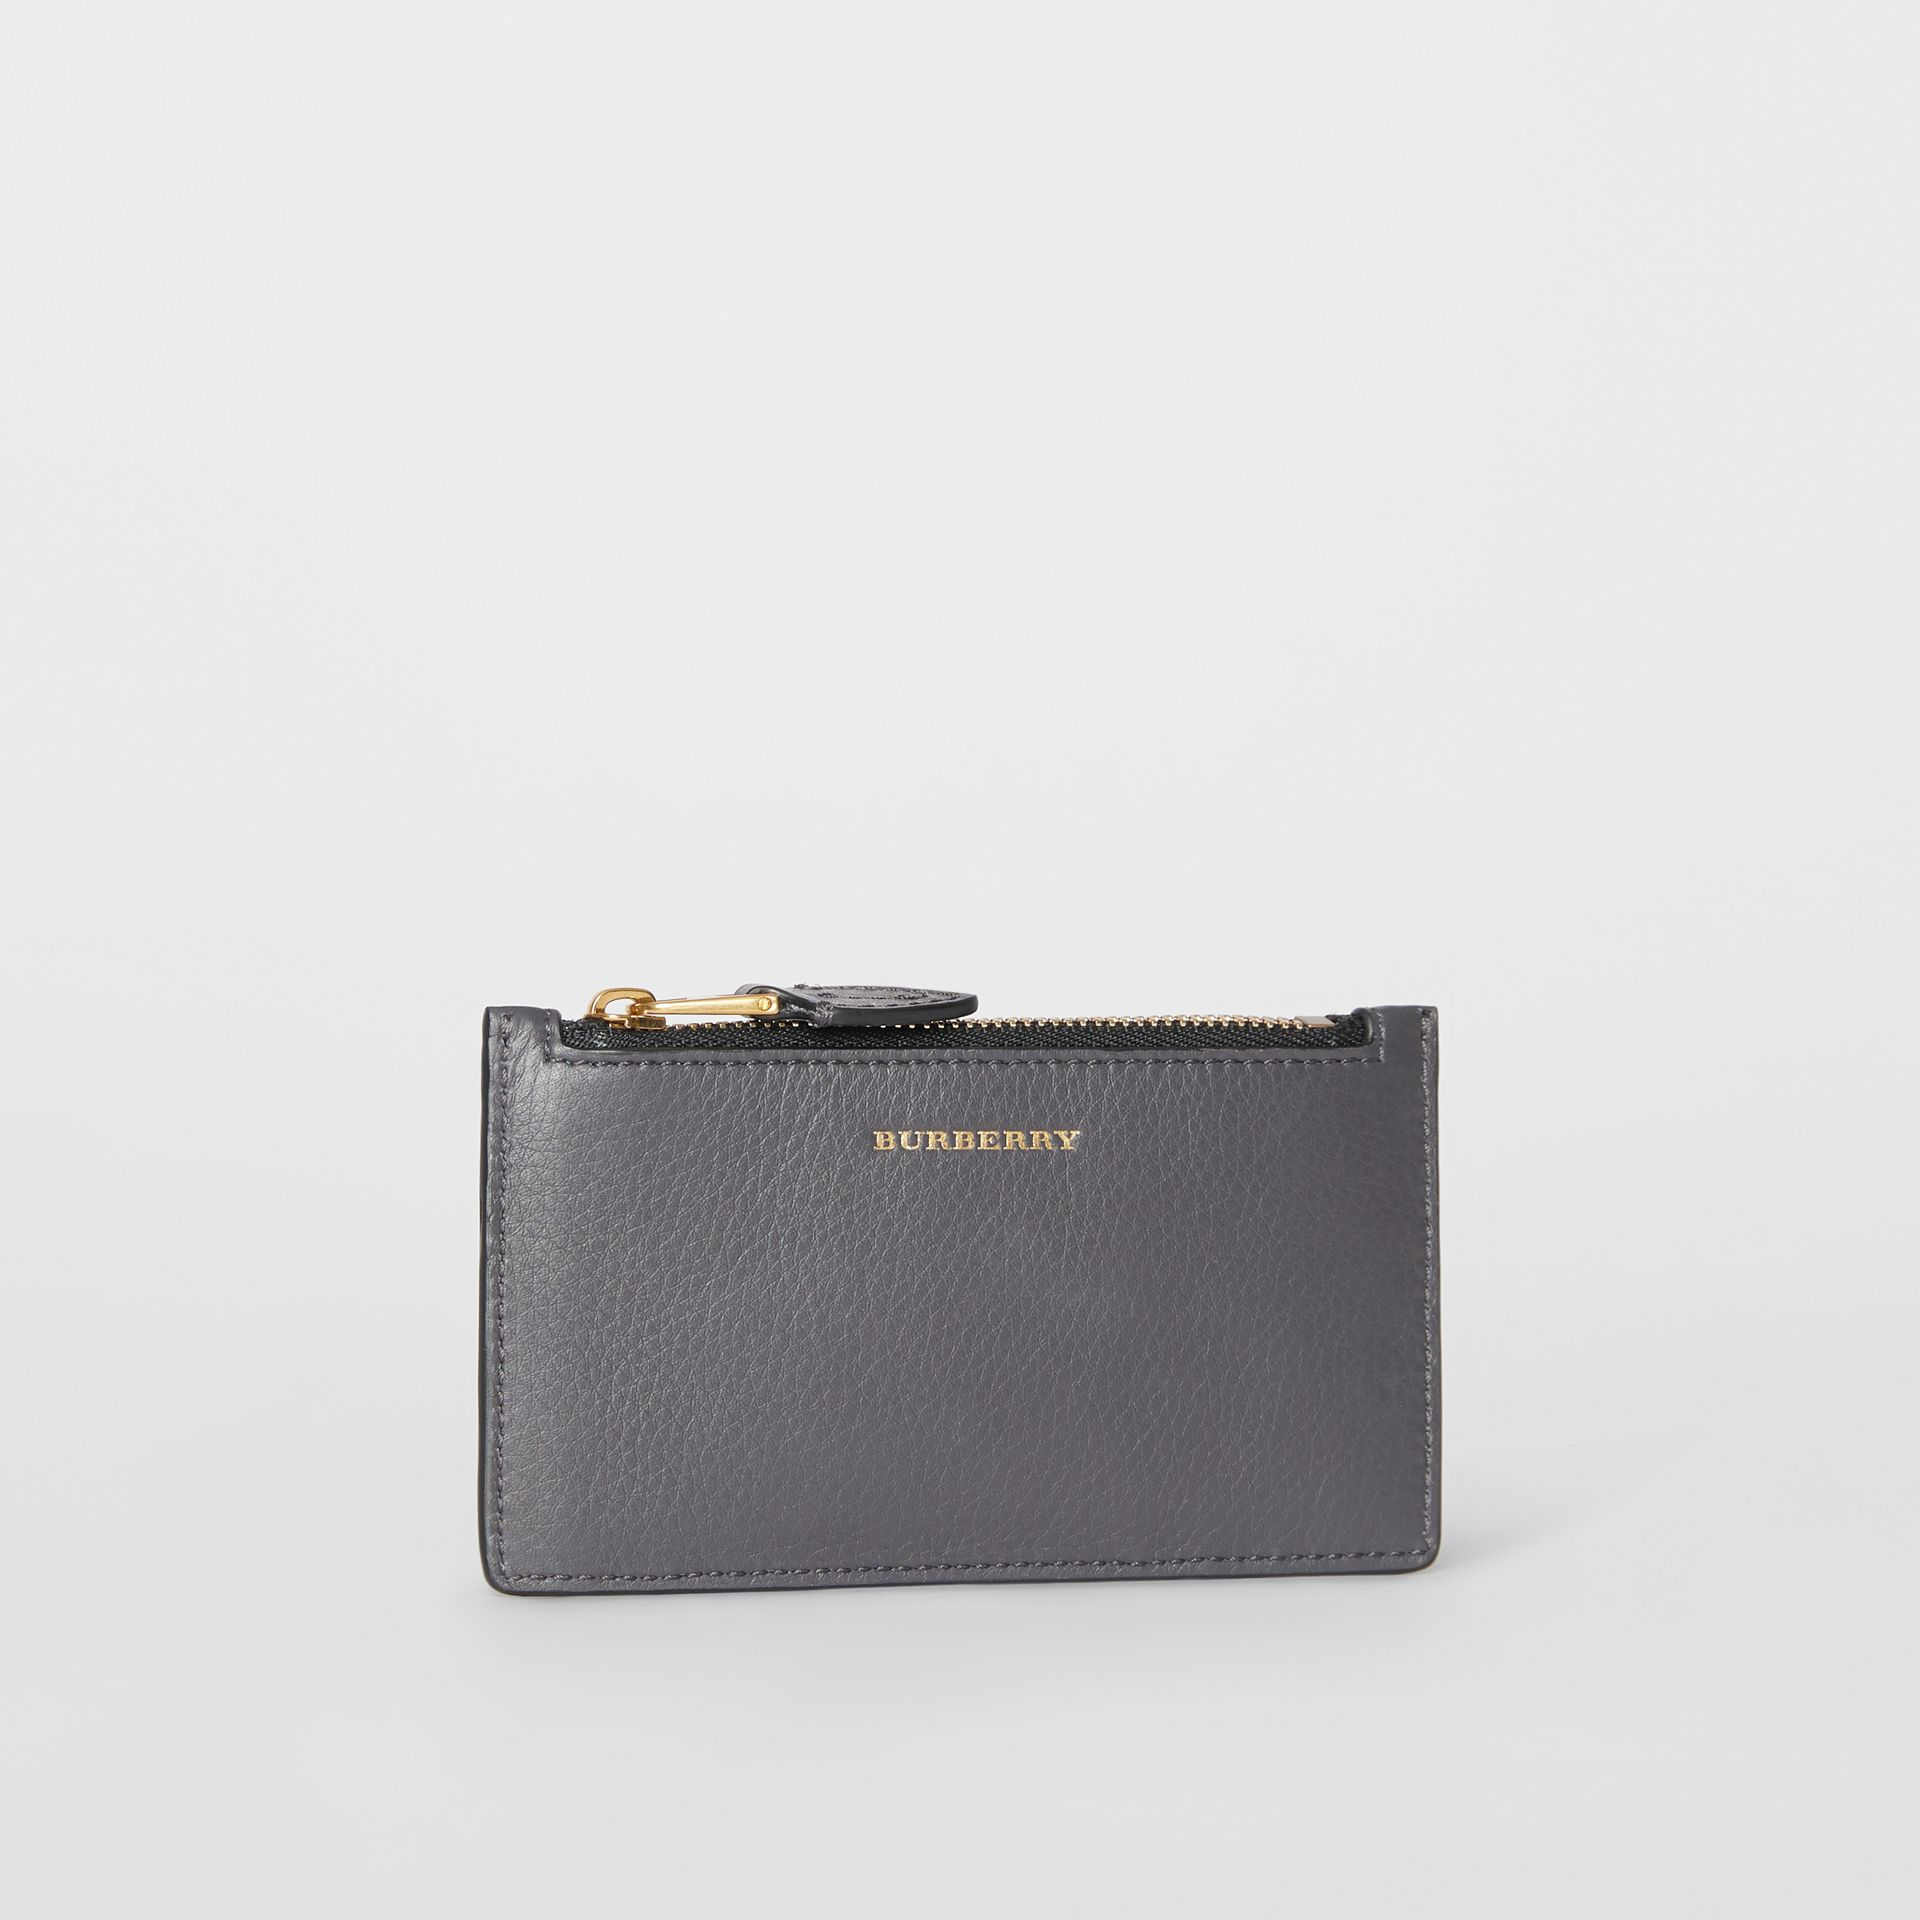 Two-tone Leather Card Case in Charcoal Grey - Women | Burberry - gallery image 4